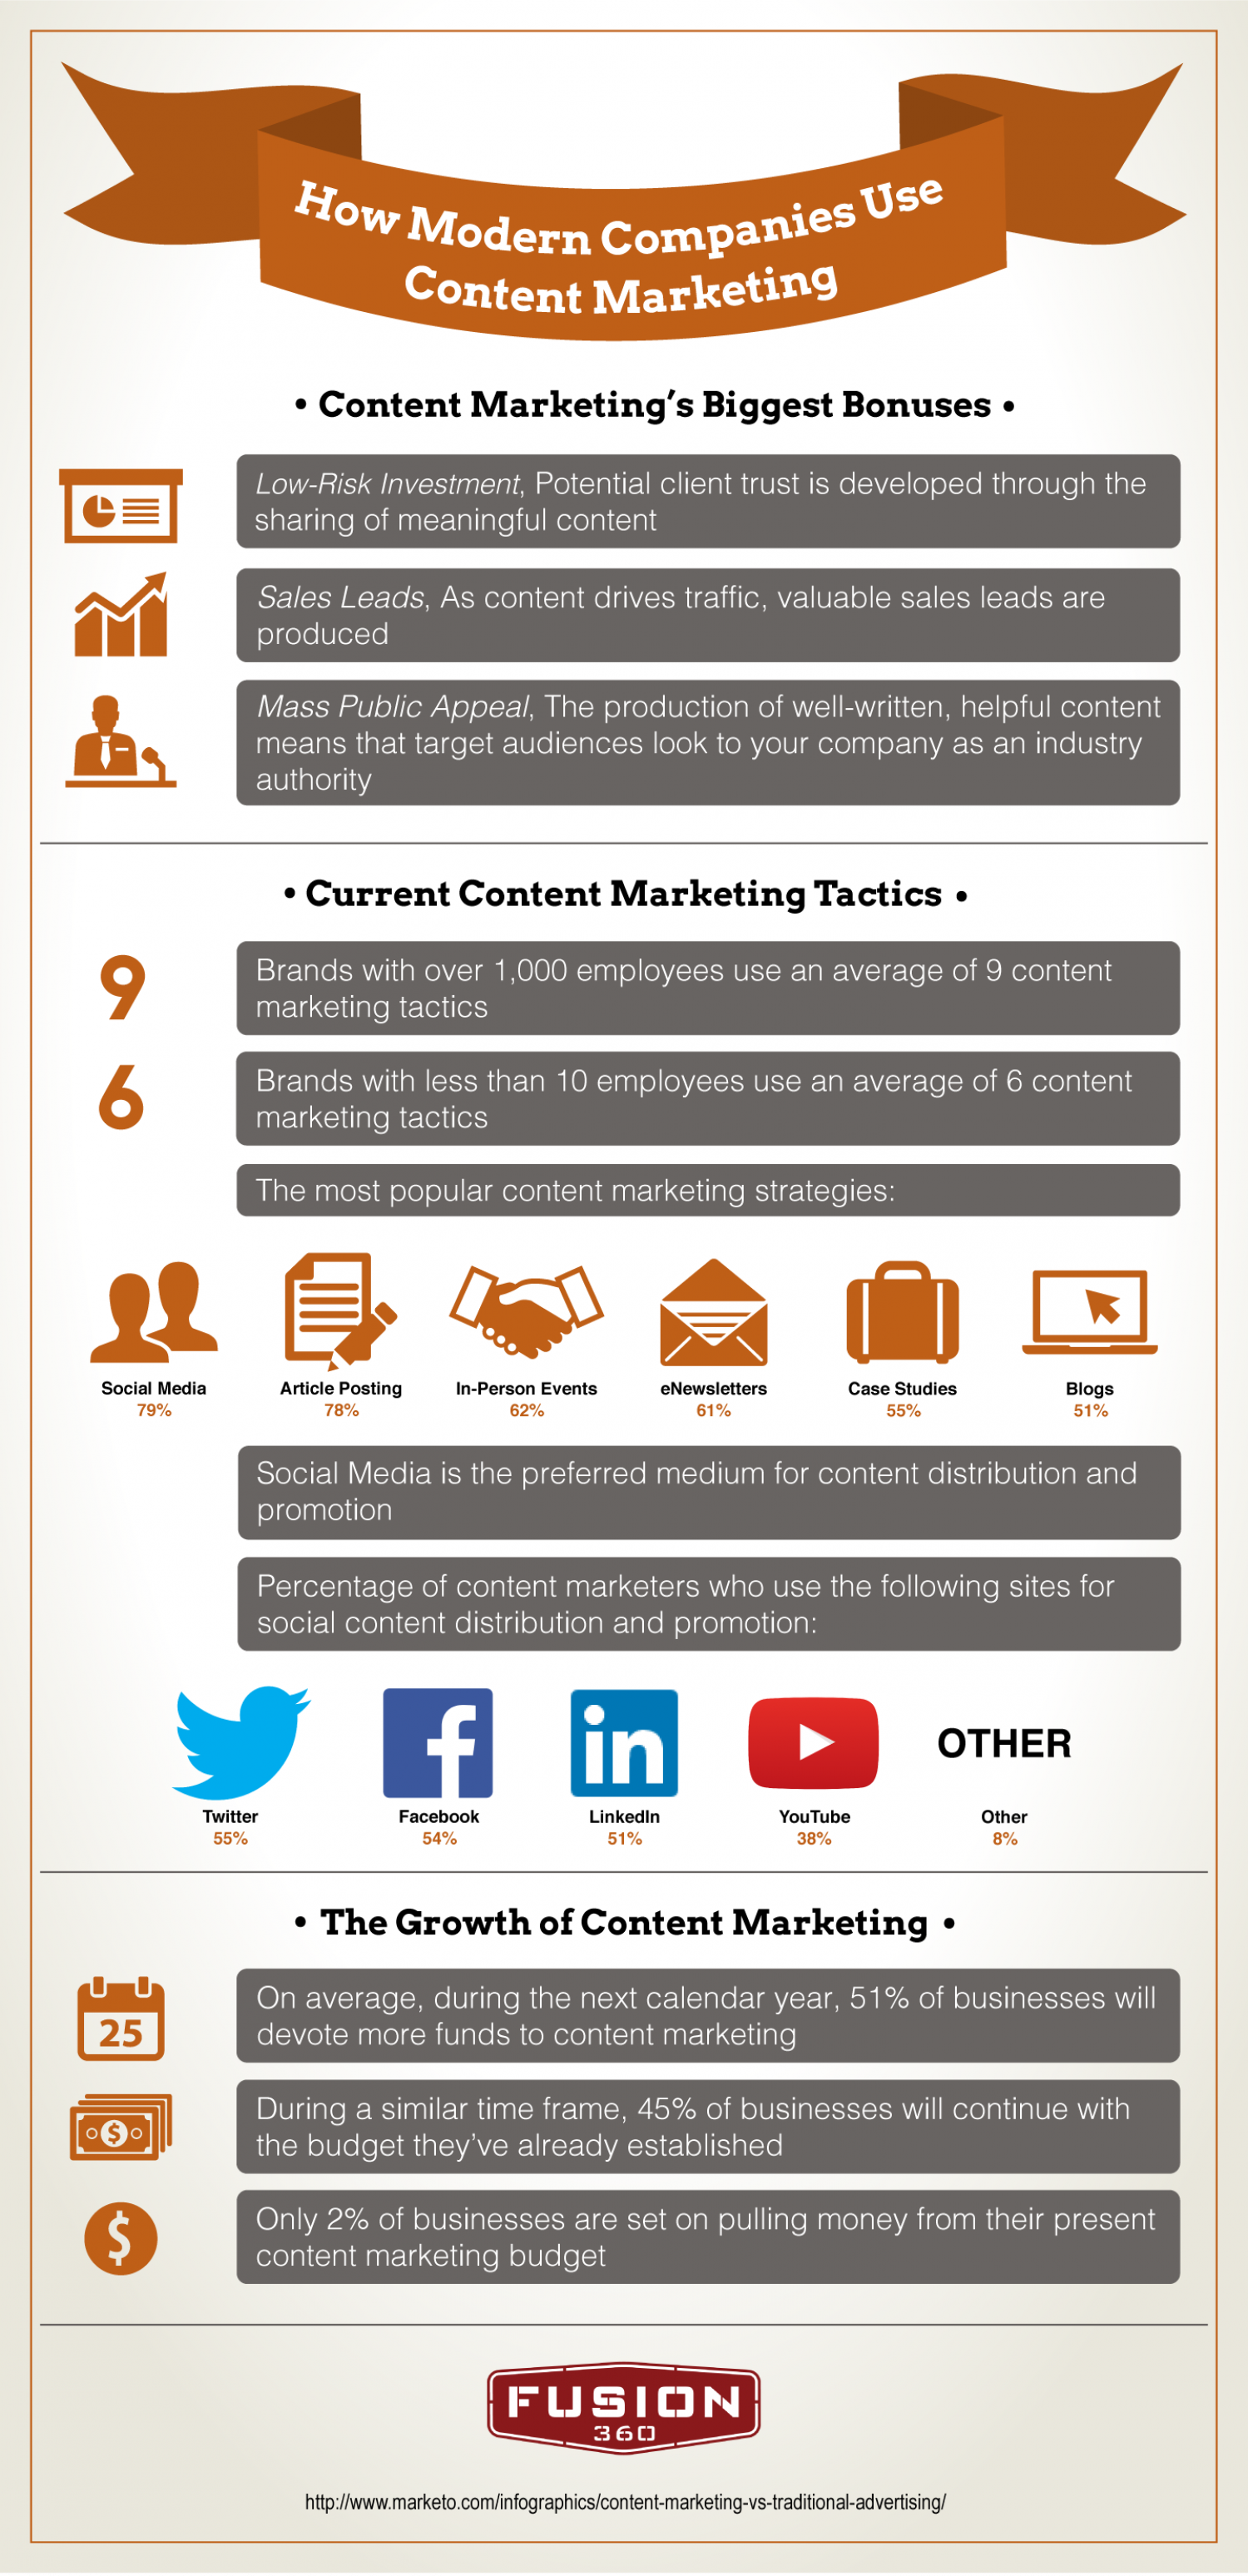 How Modern Companies Use Content Marketing Infographic